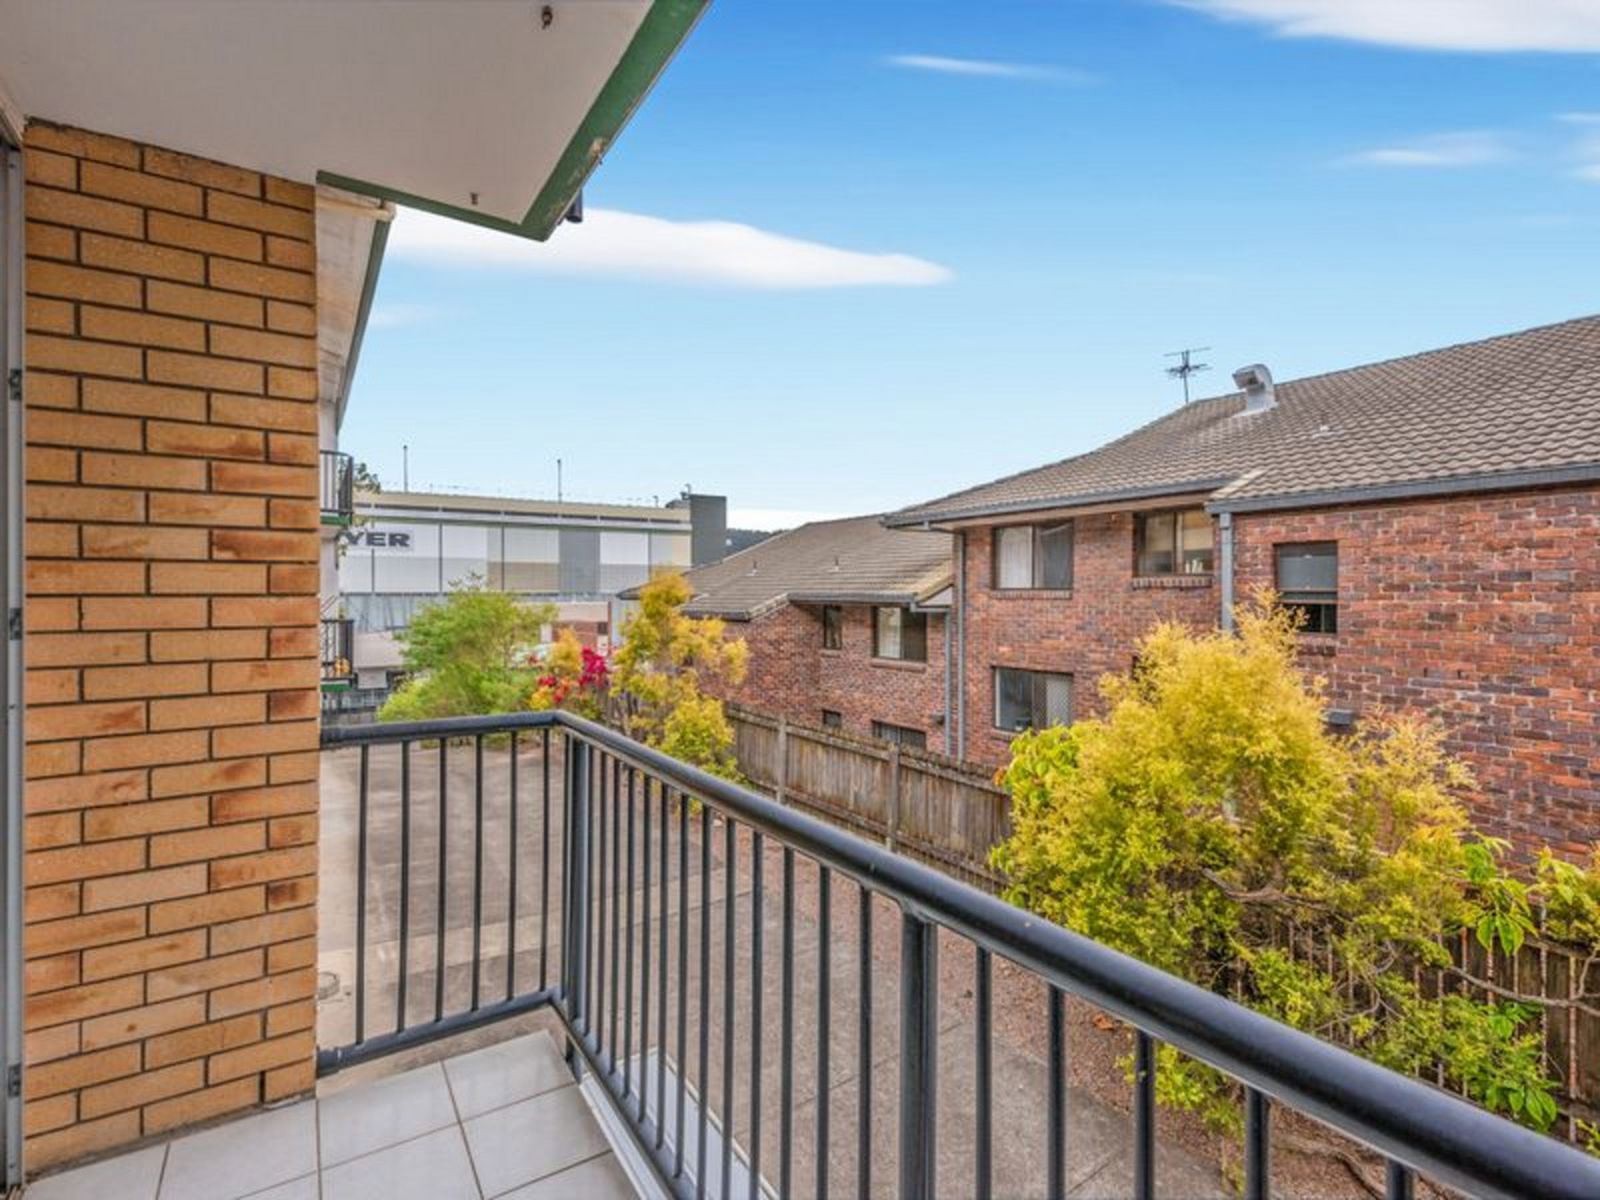 3 / 28 UNDERHILL Avenue, Indooroopilly